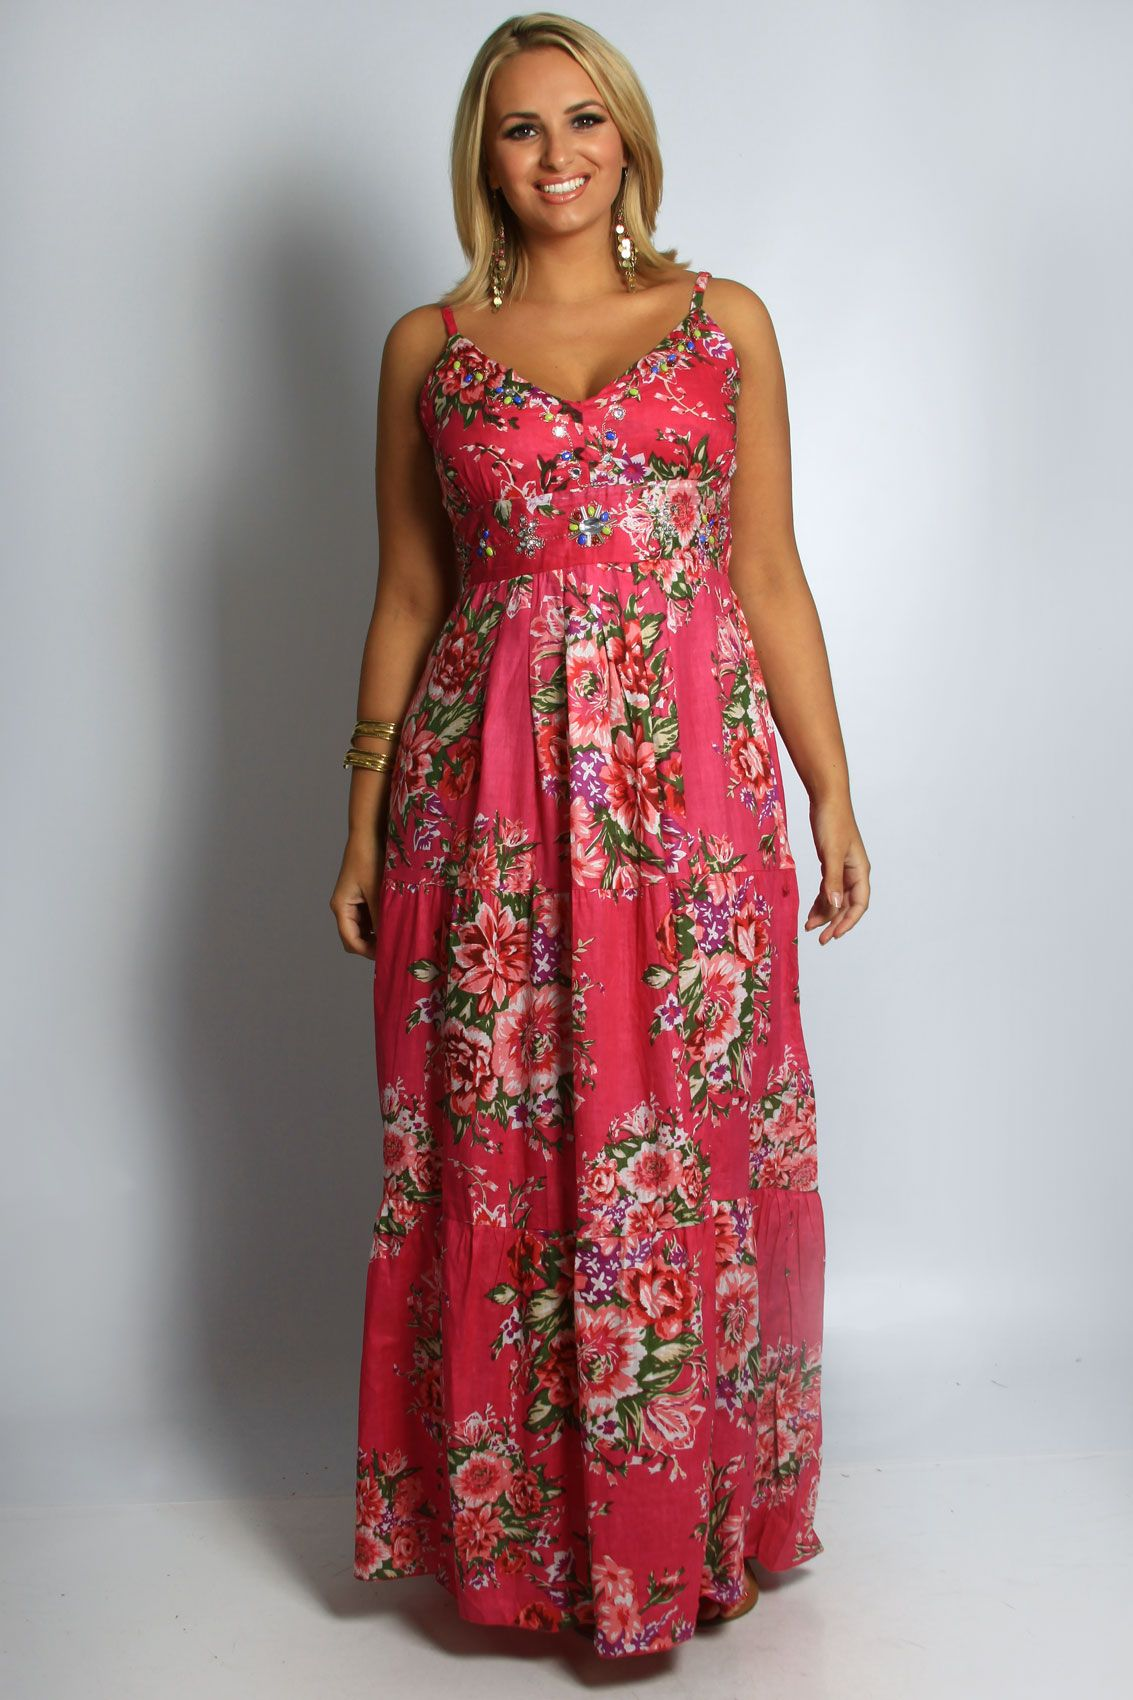 Cheap plus size maxi dresses uk | Good style dresses | Pinterest ...